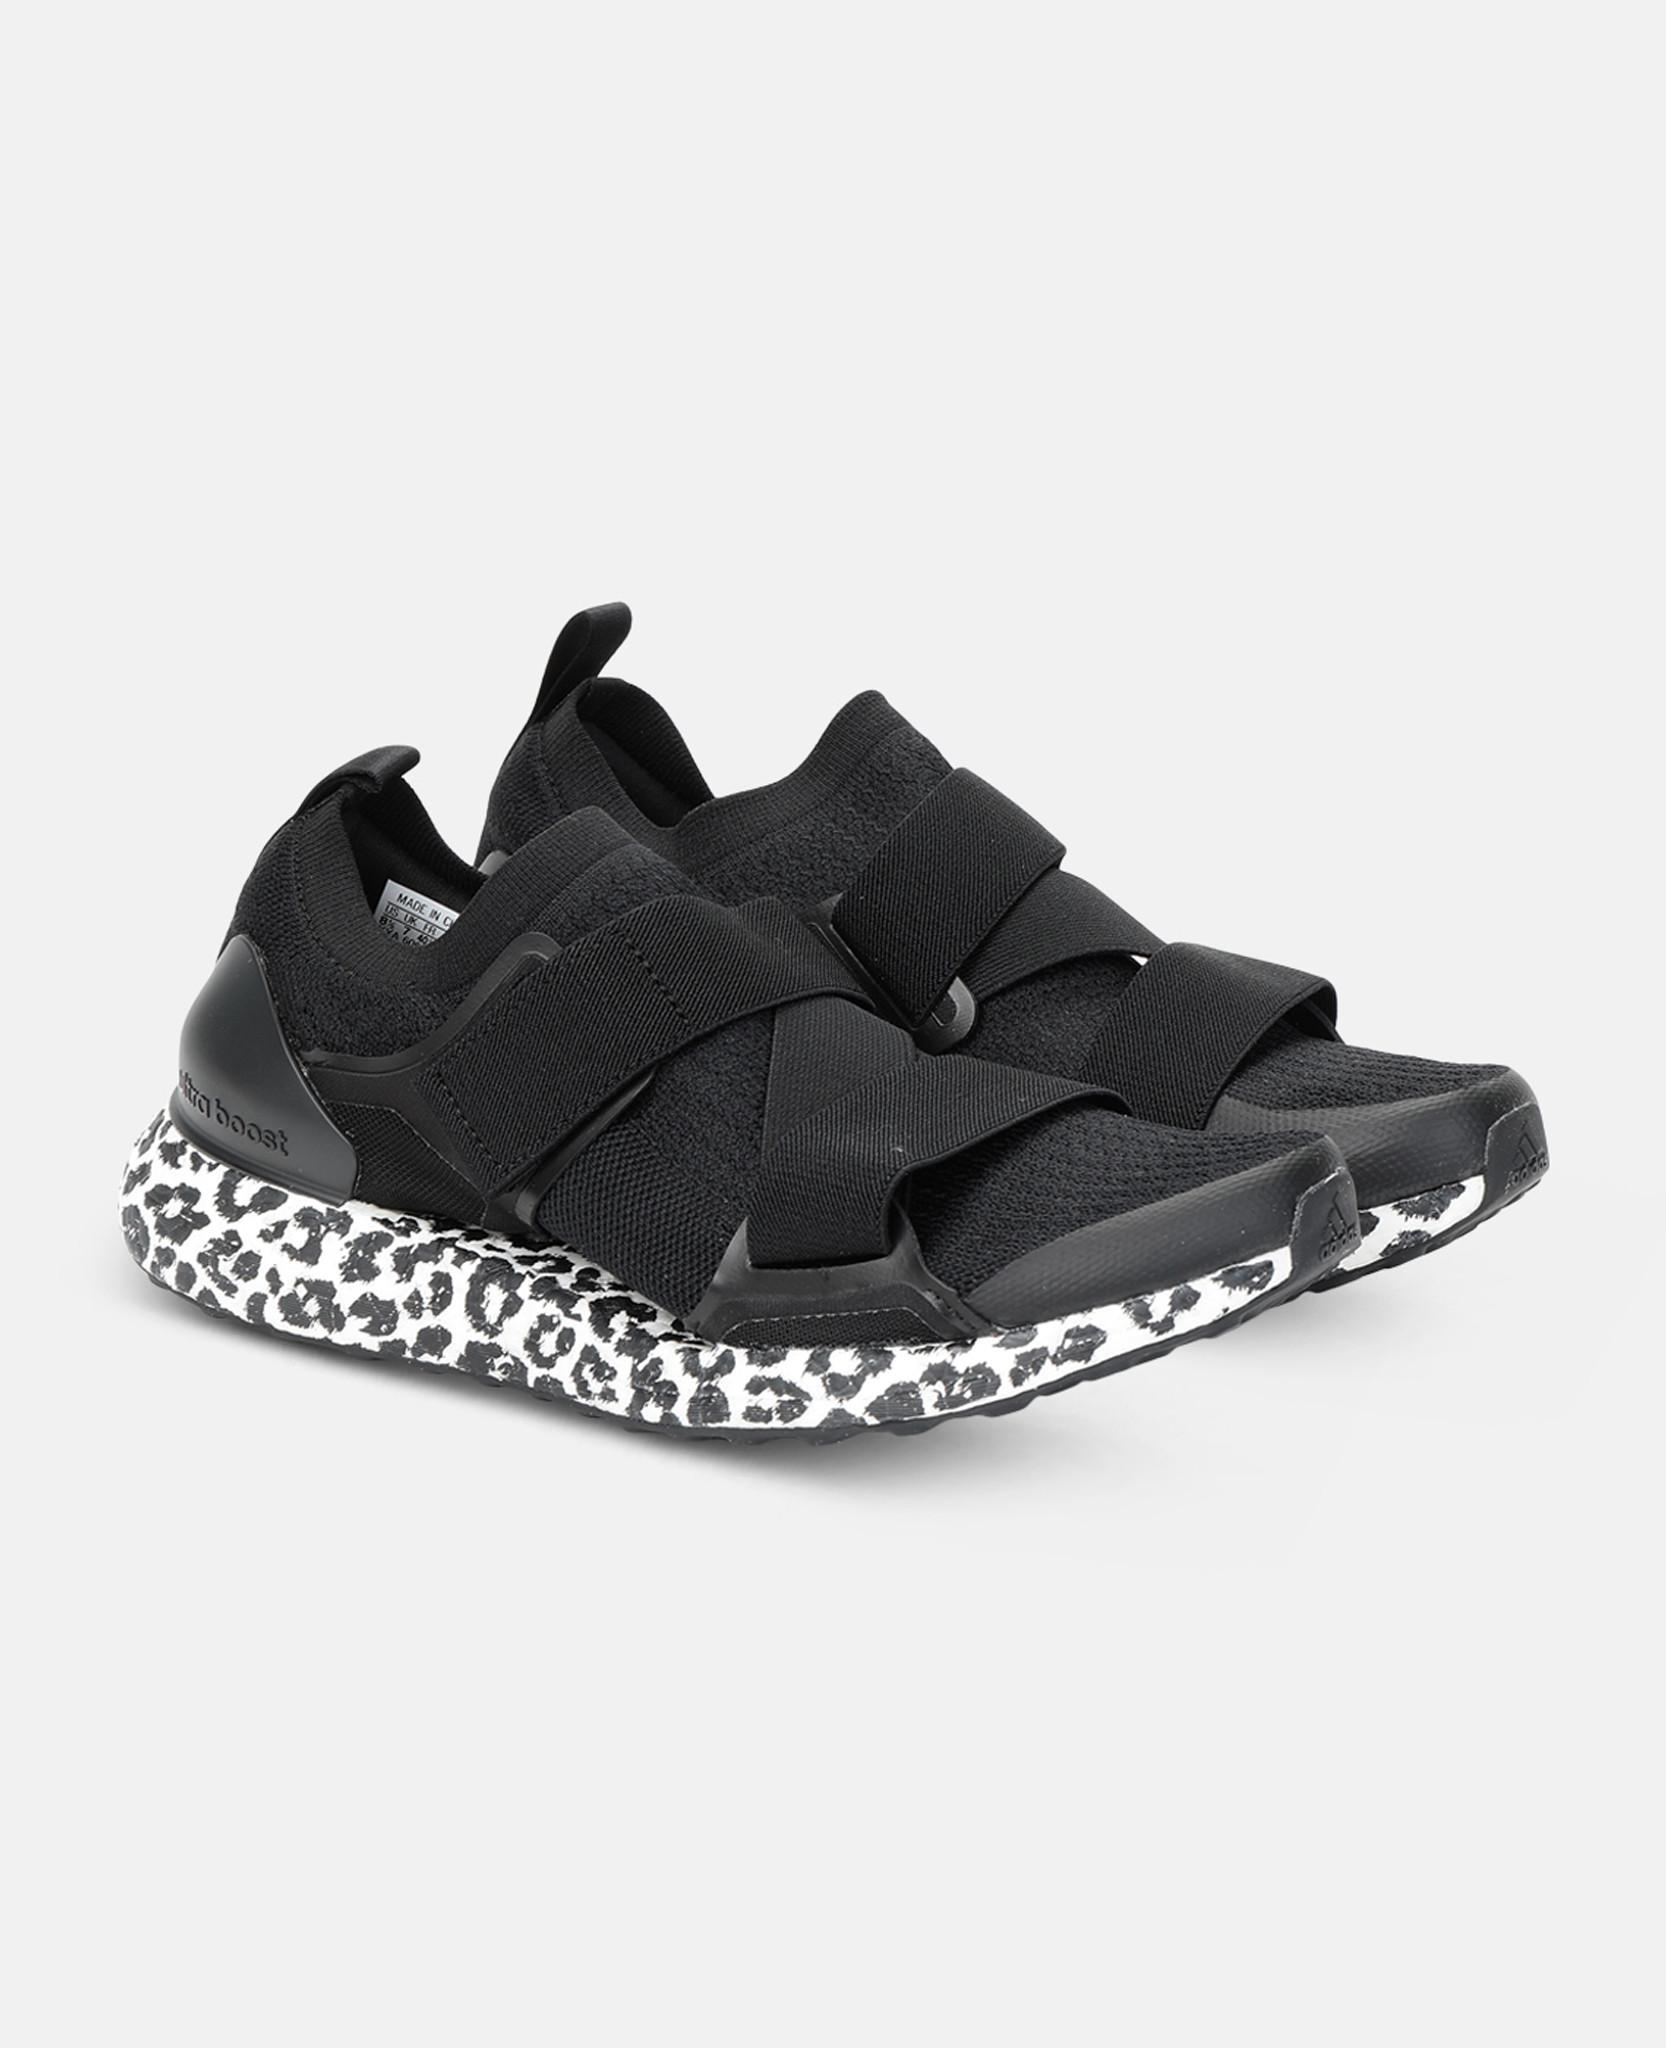 7e8e46fb9004 ... Lyst - Adidas By Stella Mccartney Ultraboost X Black And White Womens  Sneakers in Black ...